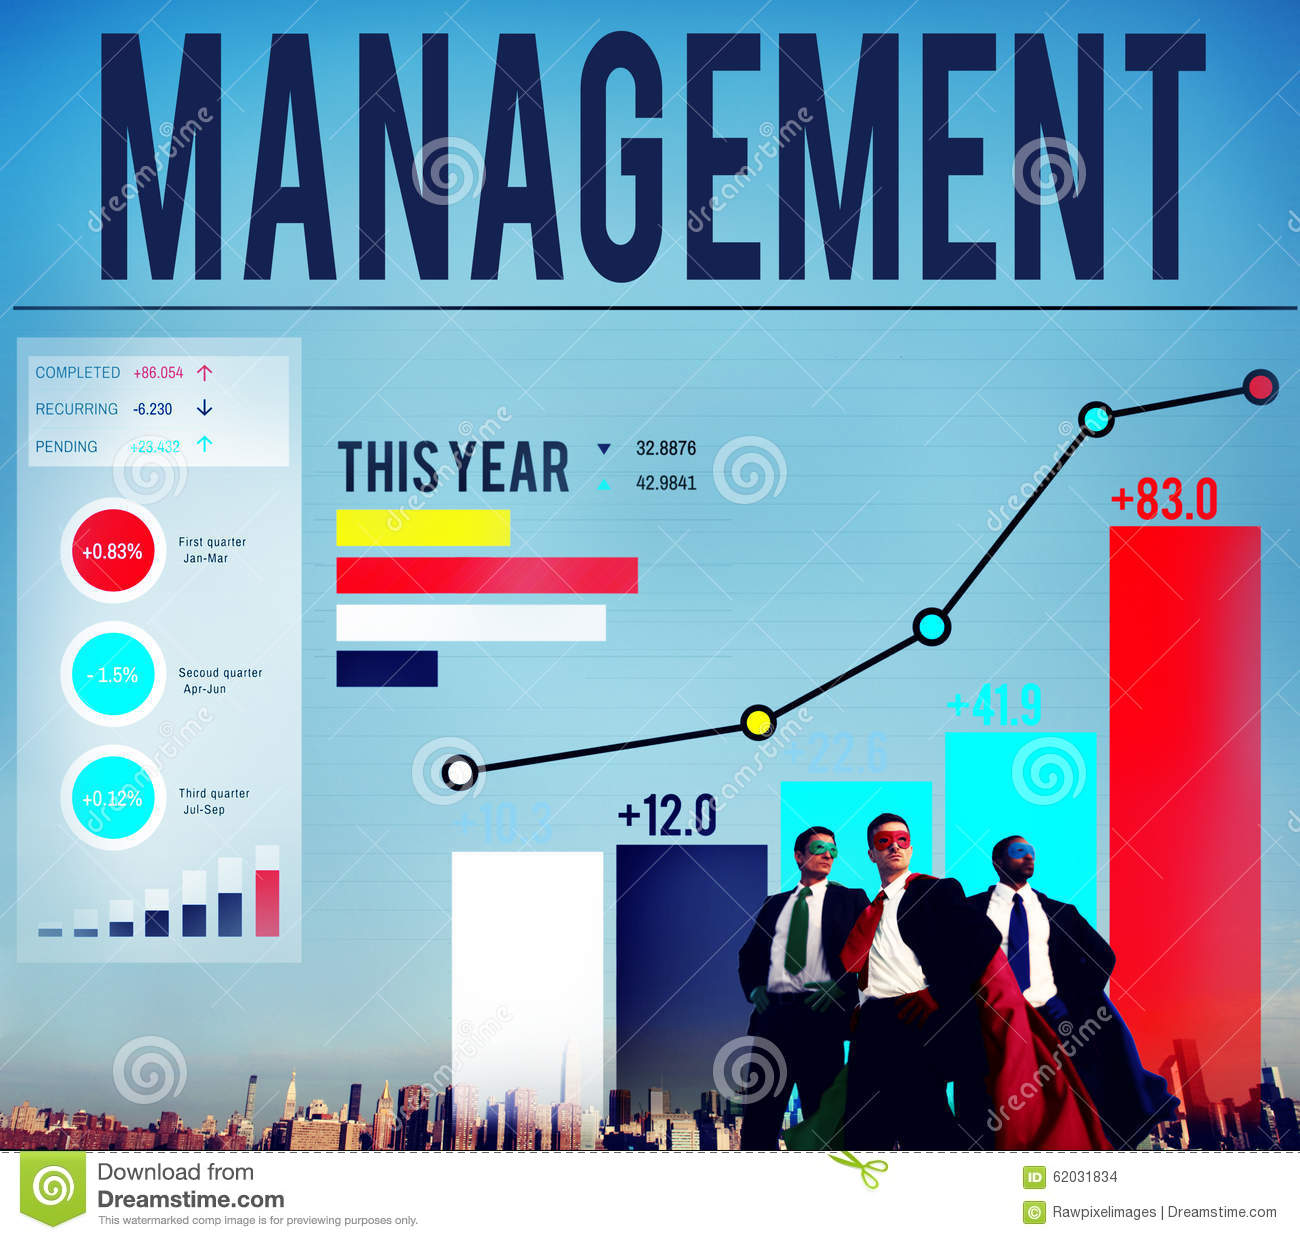 leadership strategy that supports organizational direction How leadership matters: the effects of leaders' alignment on strategy implementation leadership influences organizational performance is not straightforward.